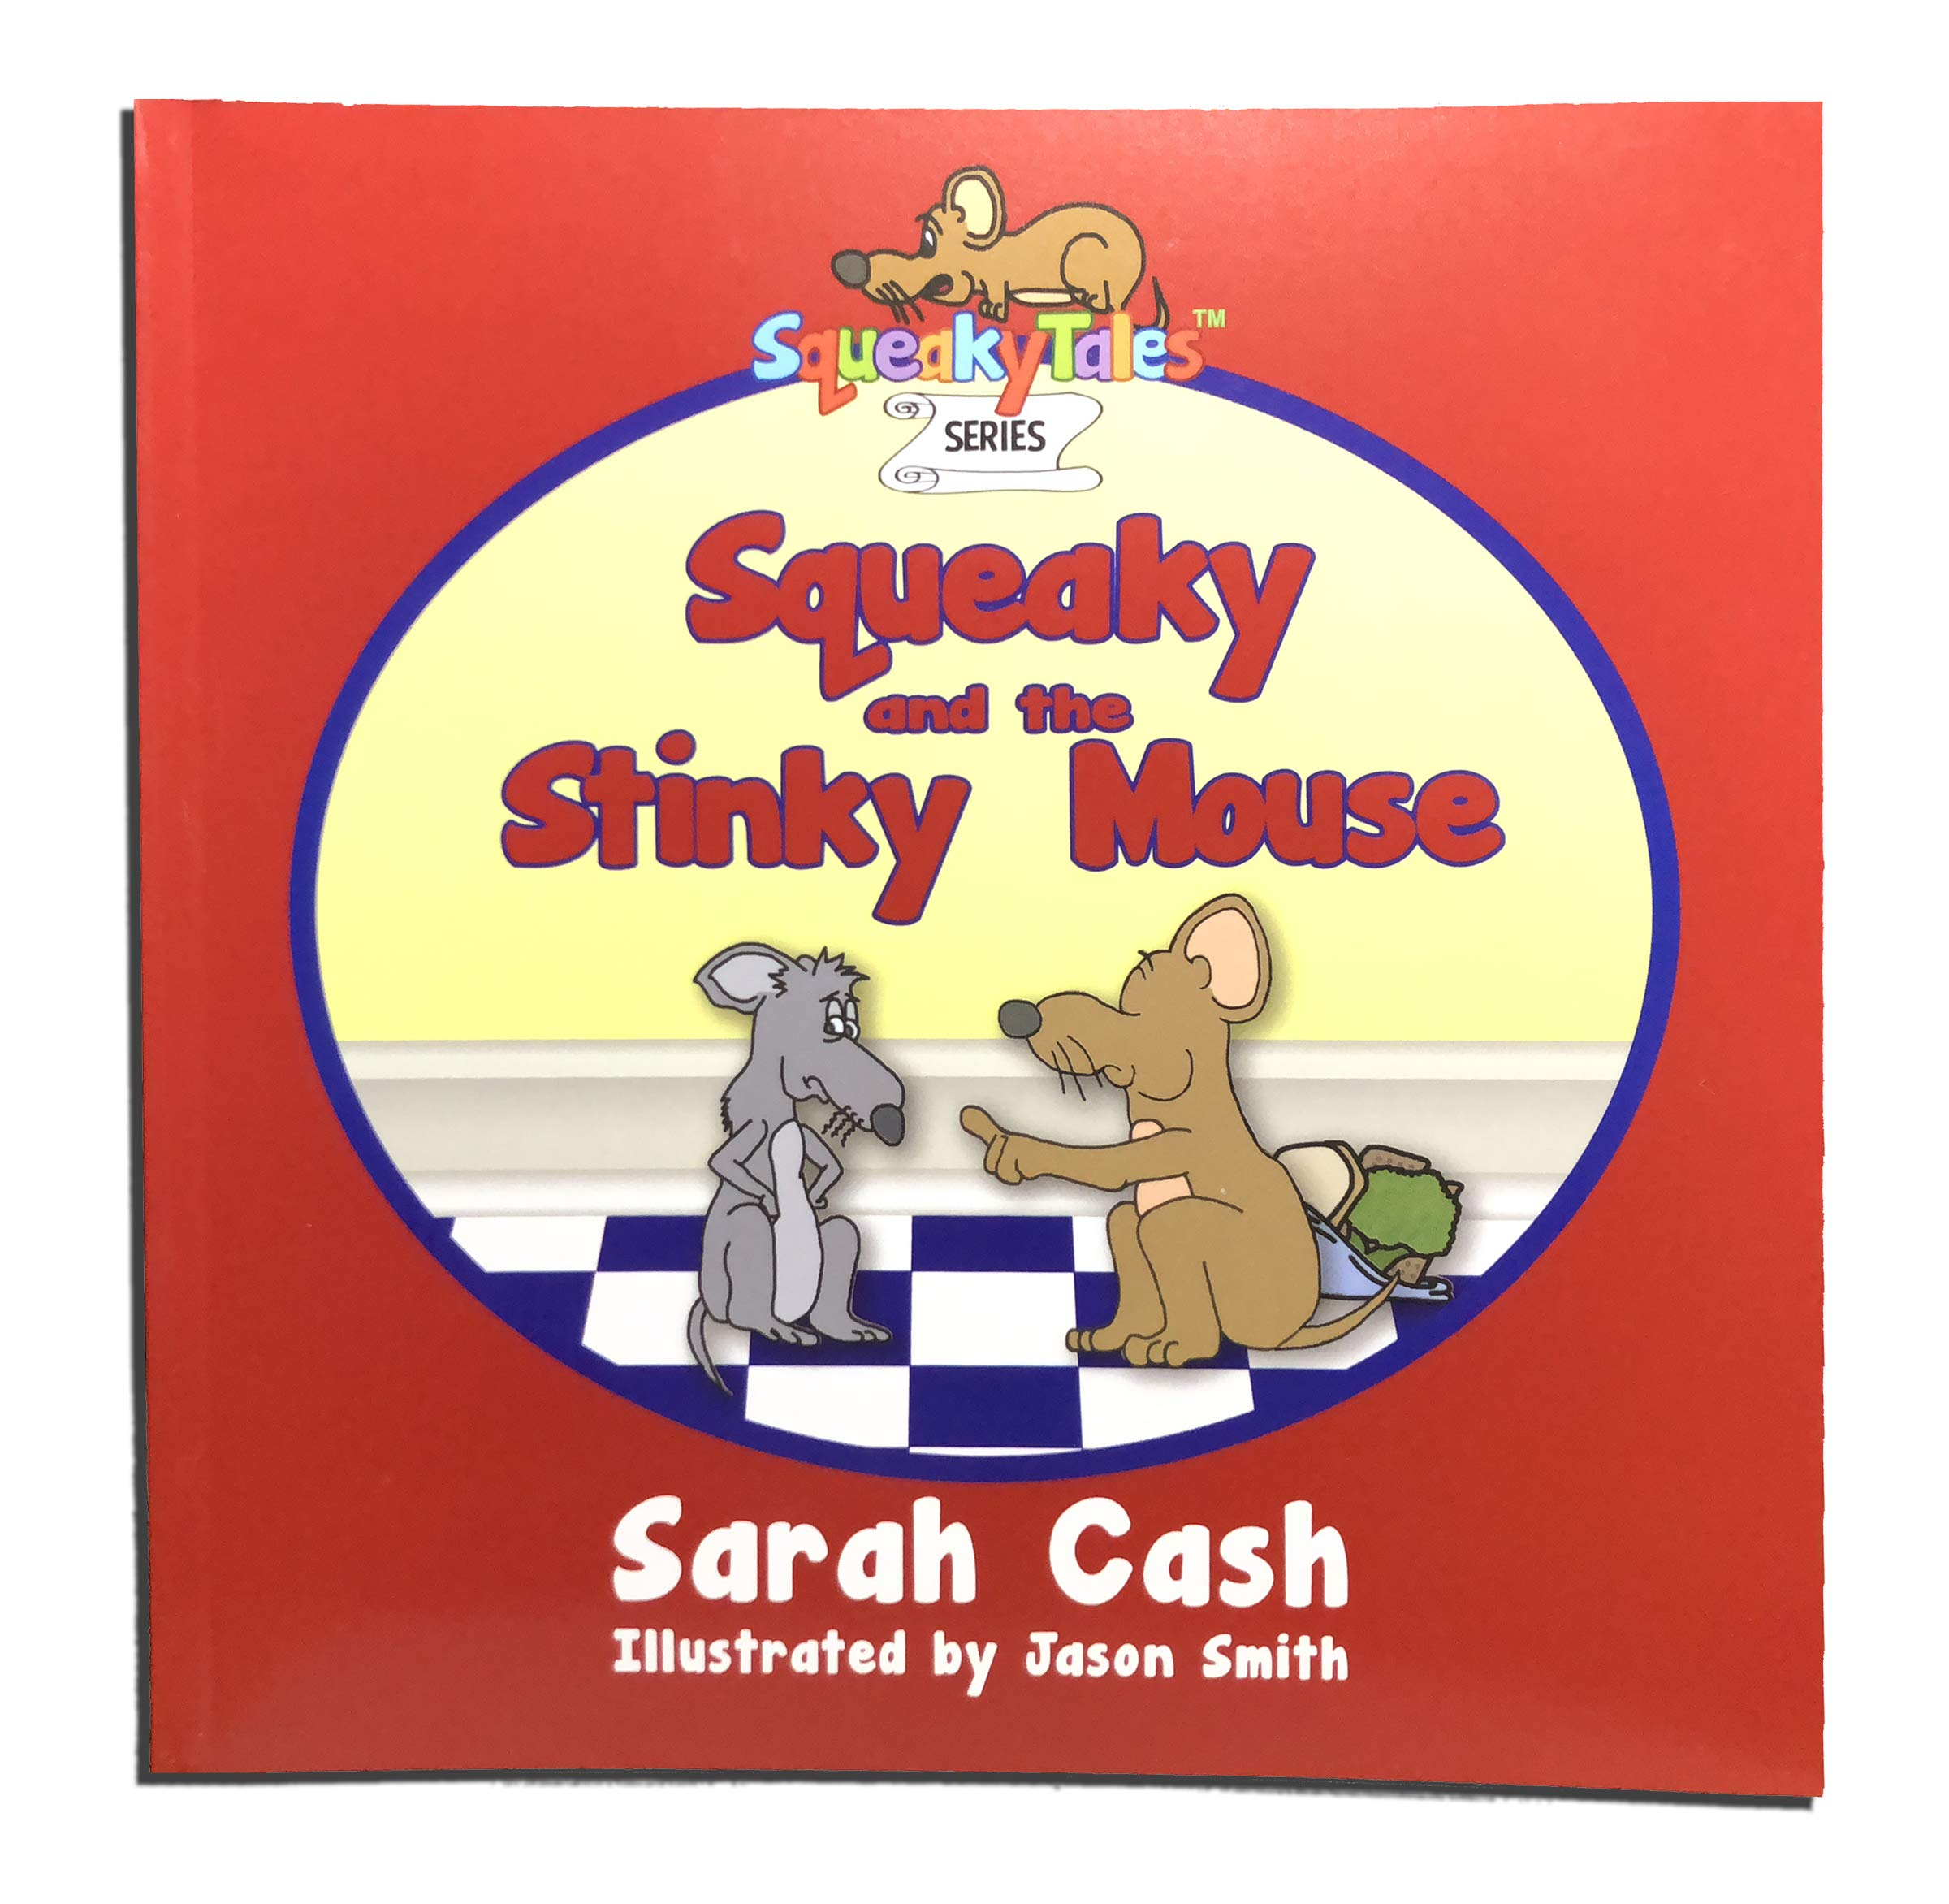 Download Squeaky and the Stinky Mouse pdf